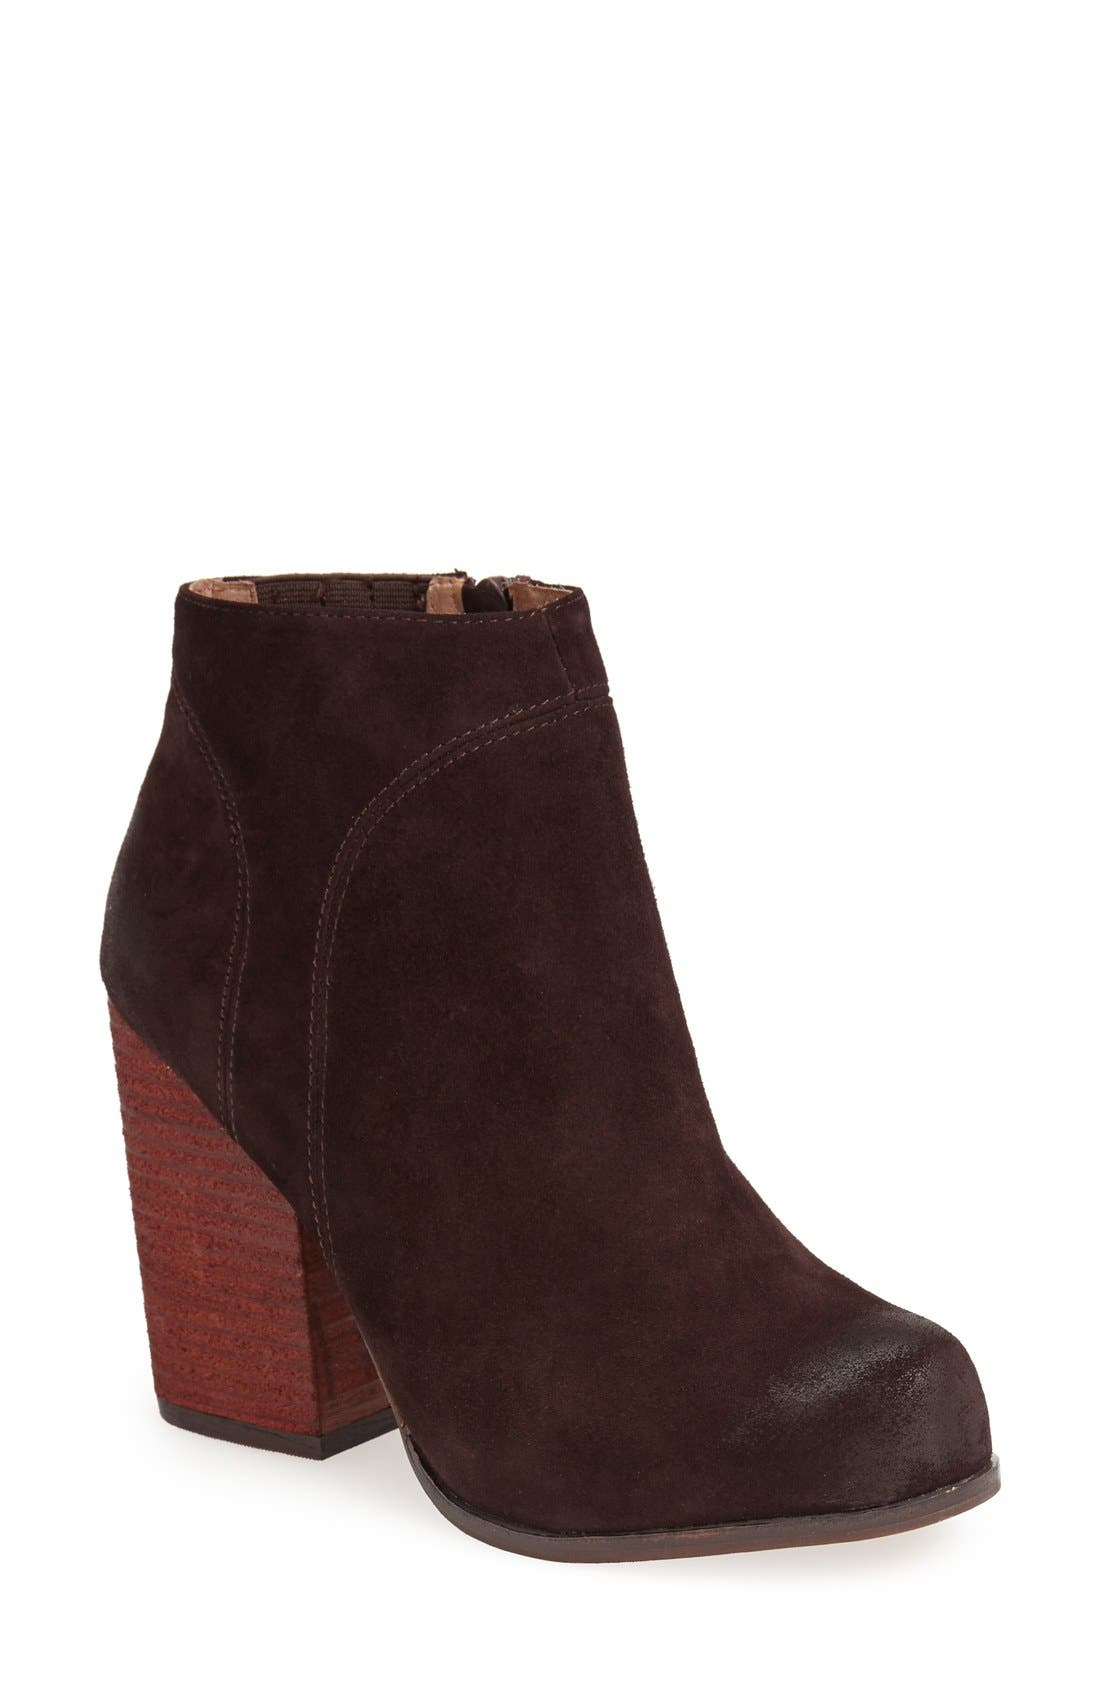 Alternate Image 1 Selected - Jeffrey Campbell 'Hanger' Bootie (Women)